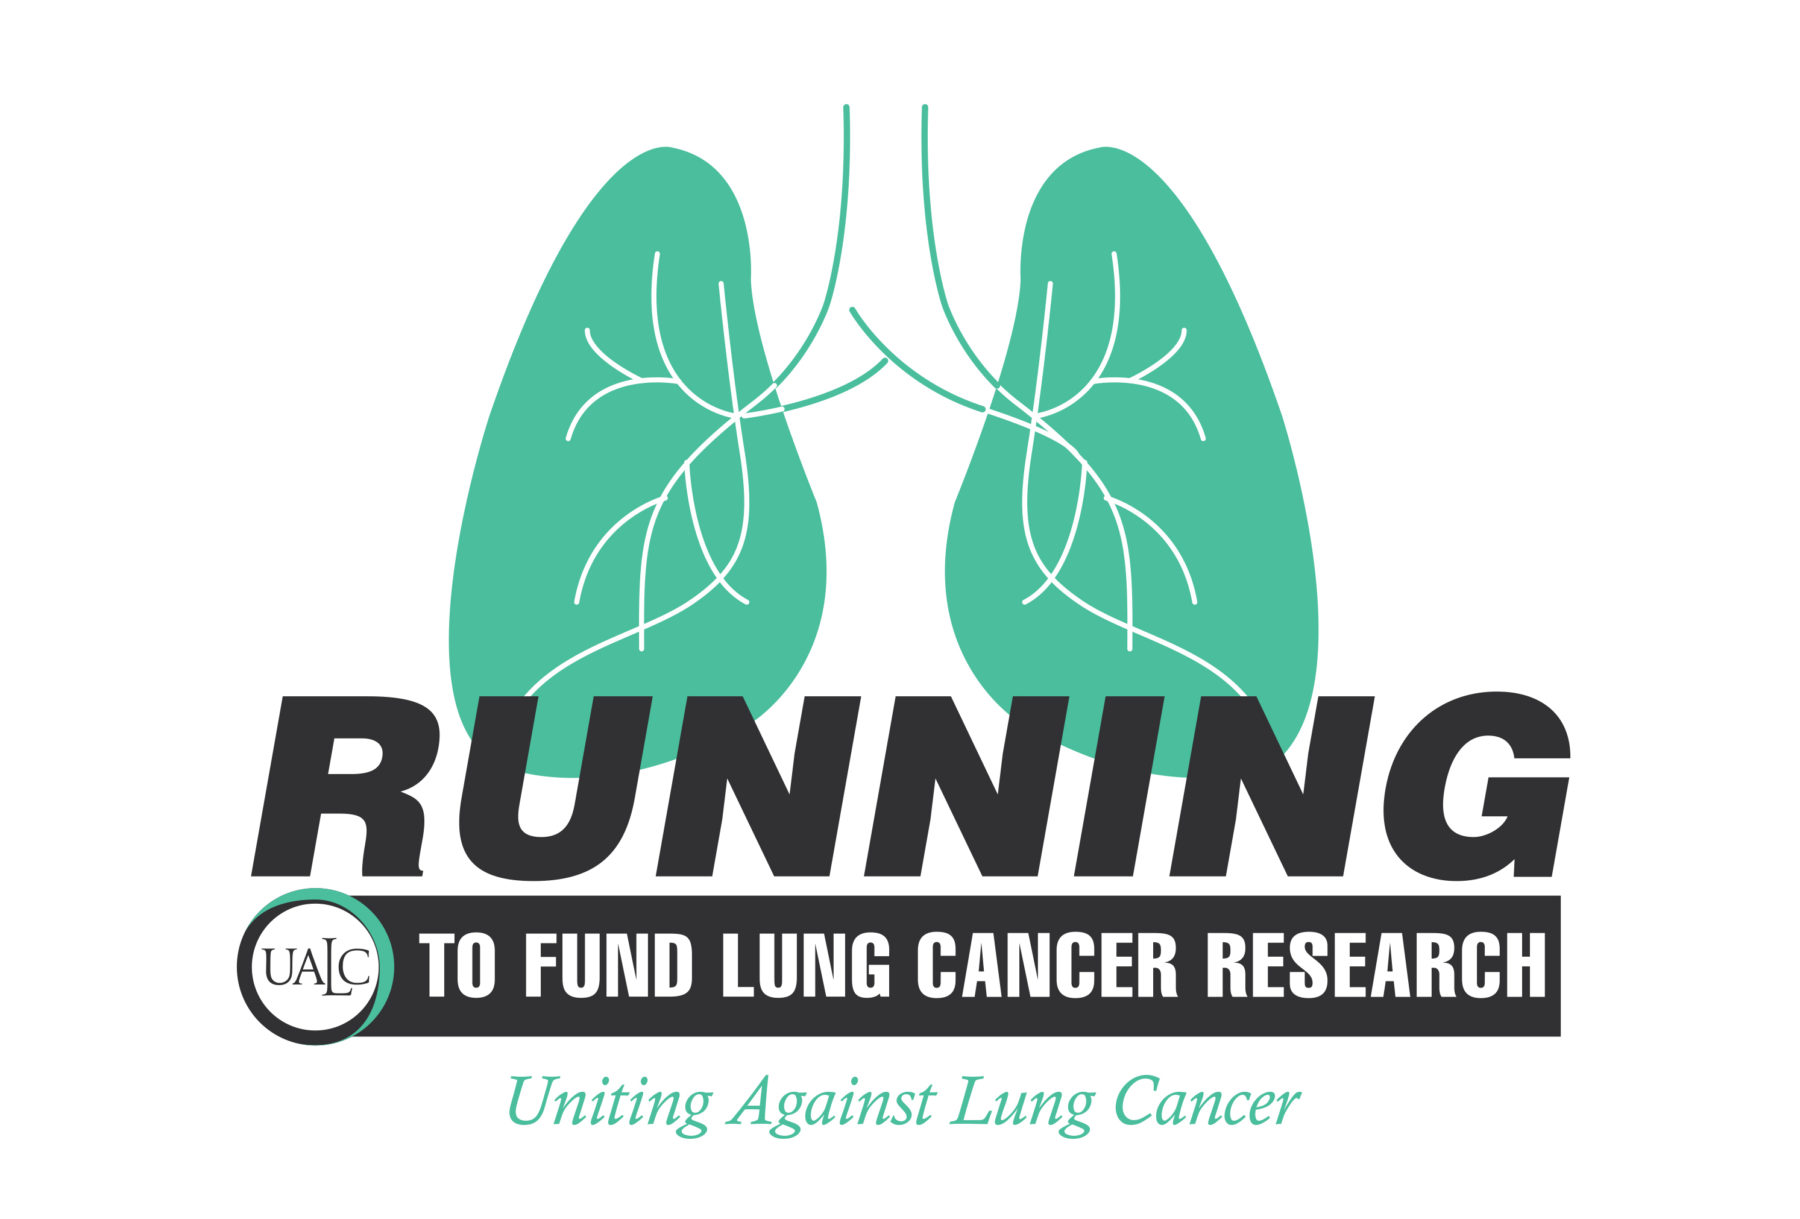 RUNNING TO FUND LUNG CABCER RESEARCH LOGO